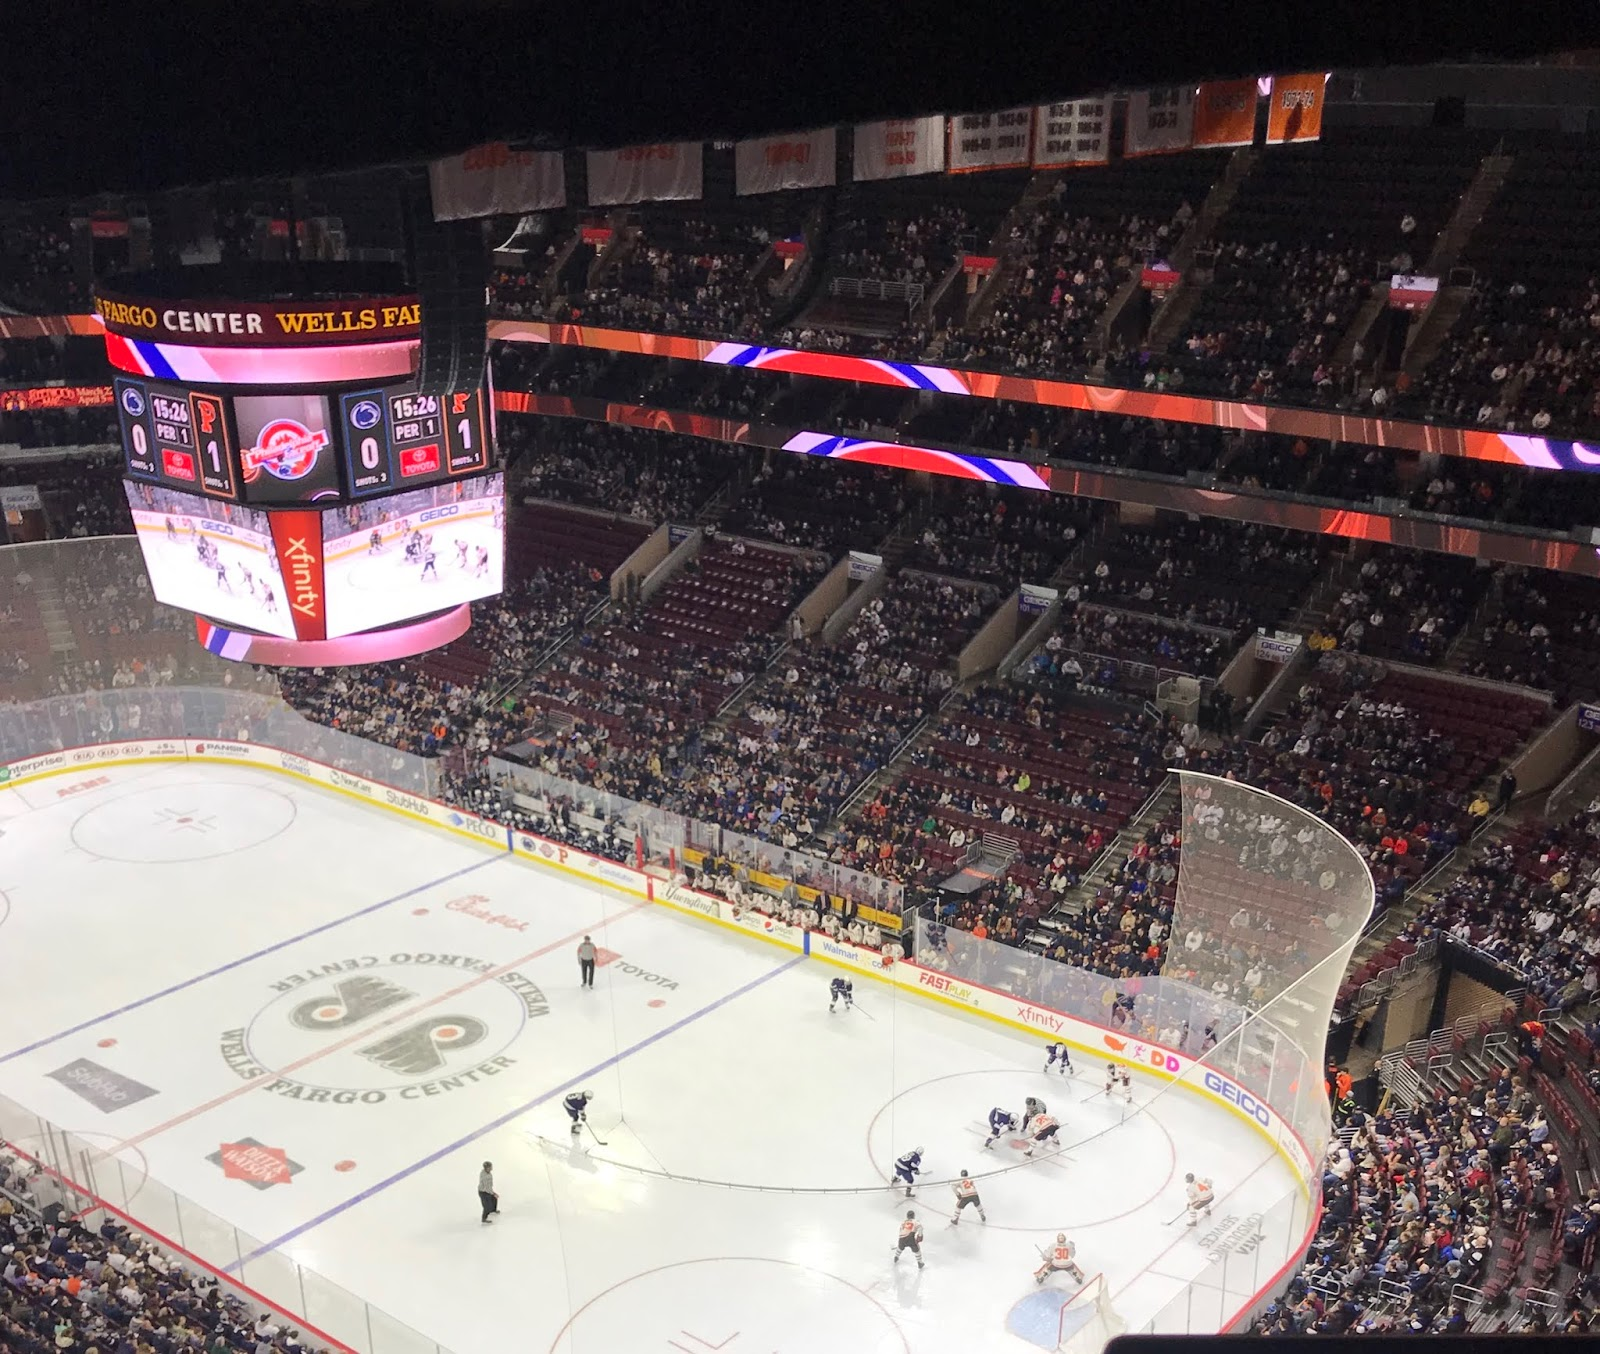 7db1024f3 ... of a venue as he was at Wells Fargo for the men's hockey game between  Princeton and No. 9 Penn State Saturday night. Here's the view from up  there: